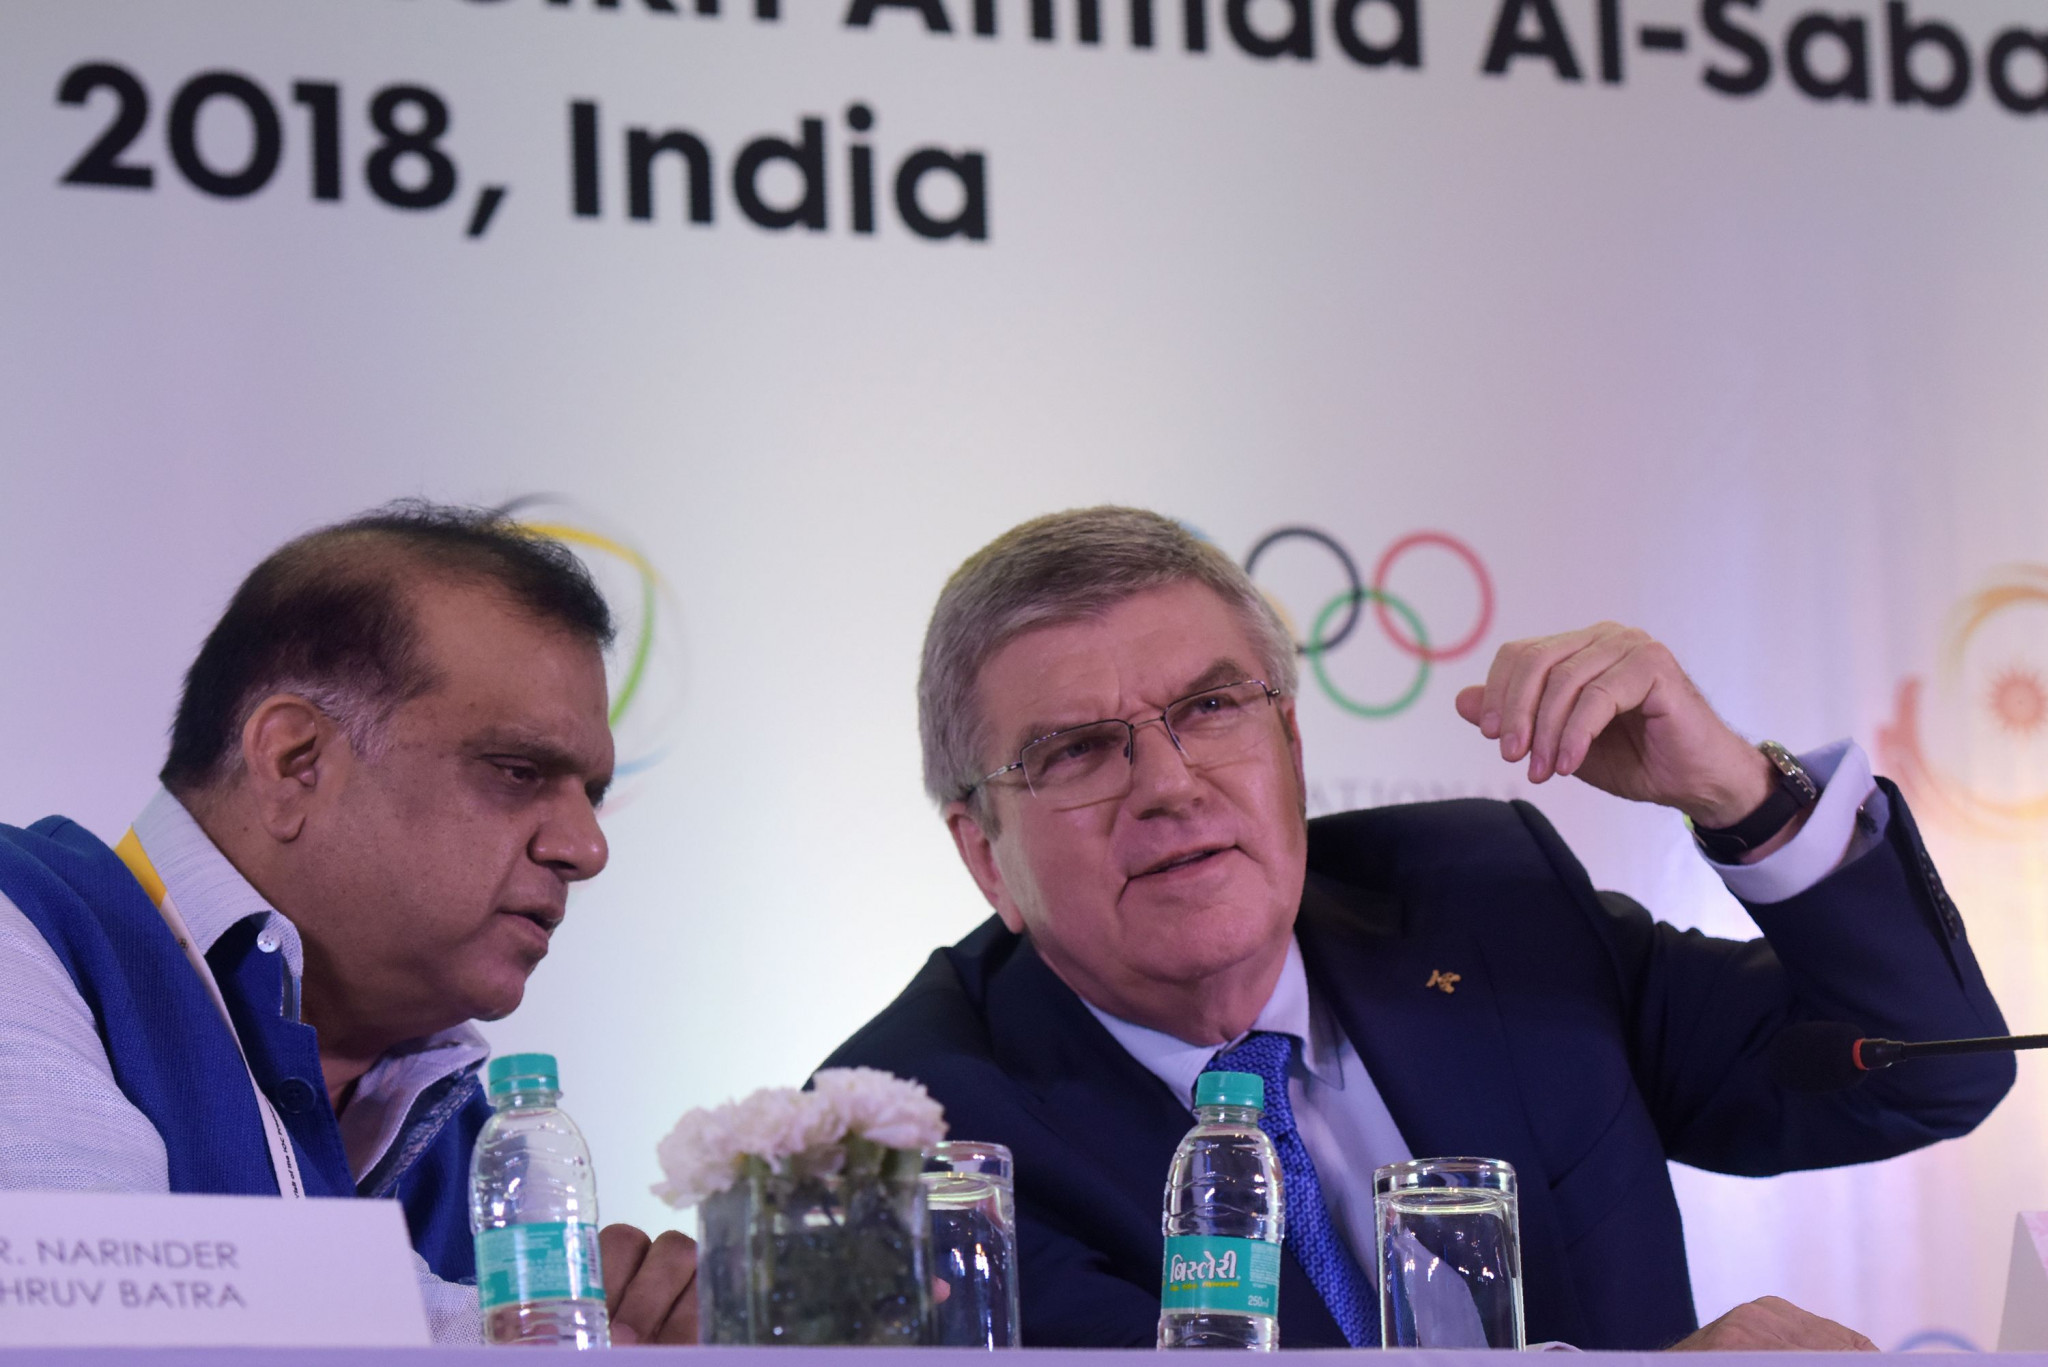 The letter providing the required guarantees was sent to IOA President Narinder Batra, left, and IOC President Thomas Bach, right ©Getty Images